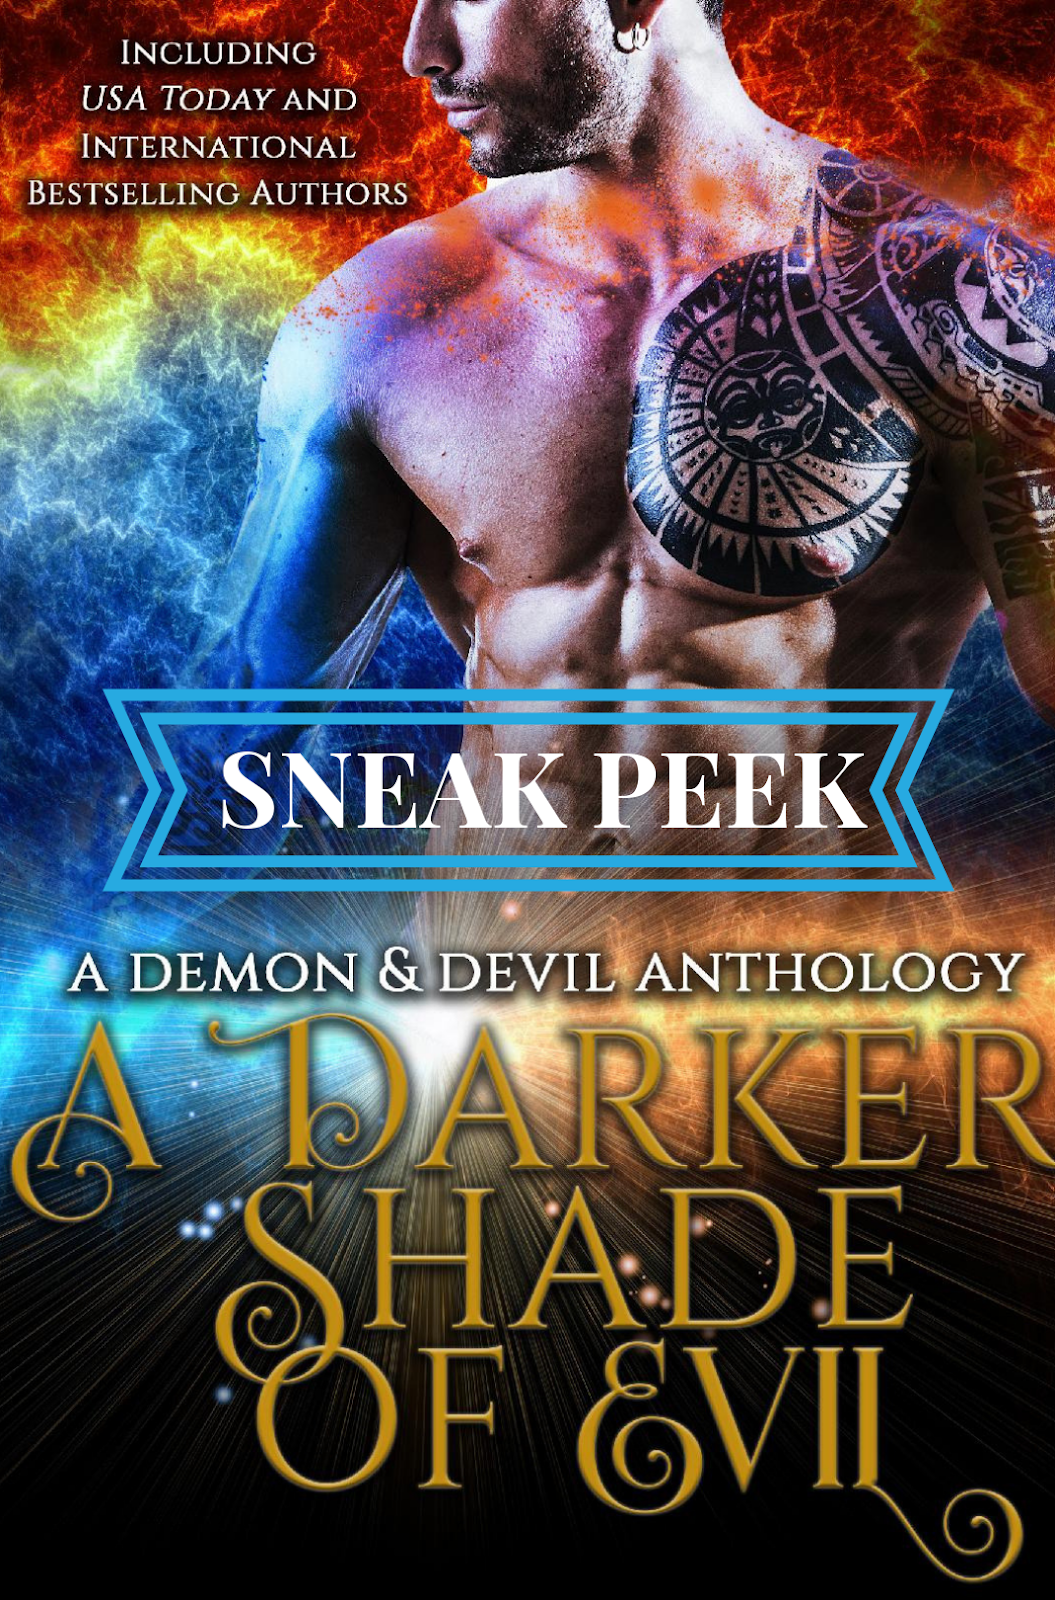 A Darker Shade of Evil (Sneak Peek Sampler)